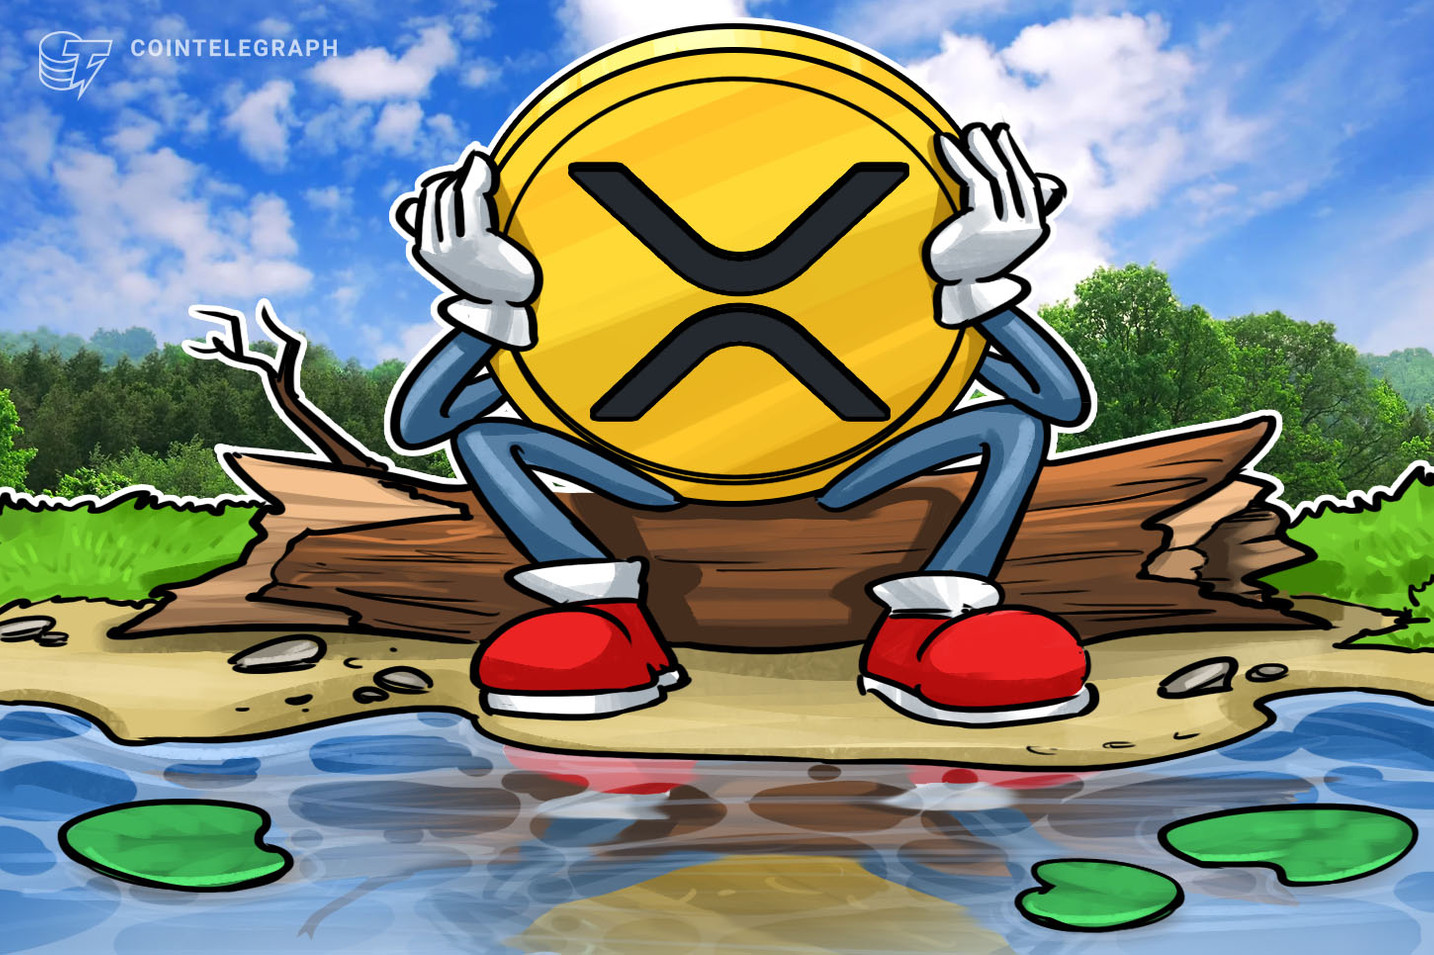 Grayscale dumps XRP: Here's where it's putting the cash